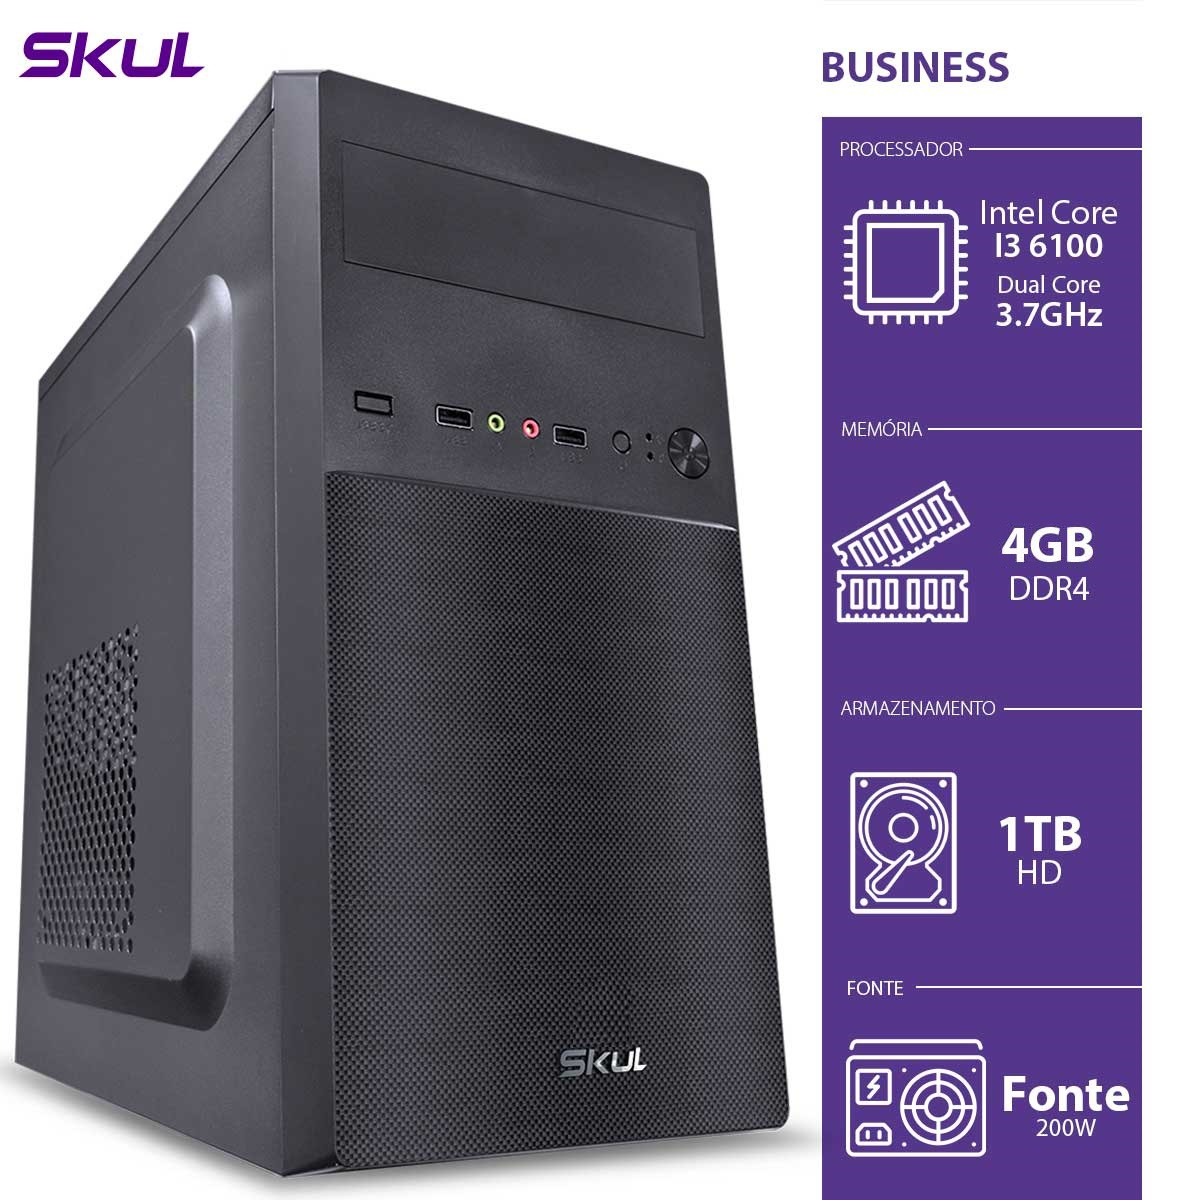 Computador Business B300 - I3-6100 3.7GHZ 4GB DDR4 HD 1TB HDMI/VGA Fonte 200W